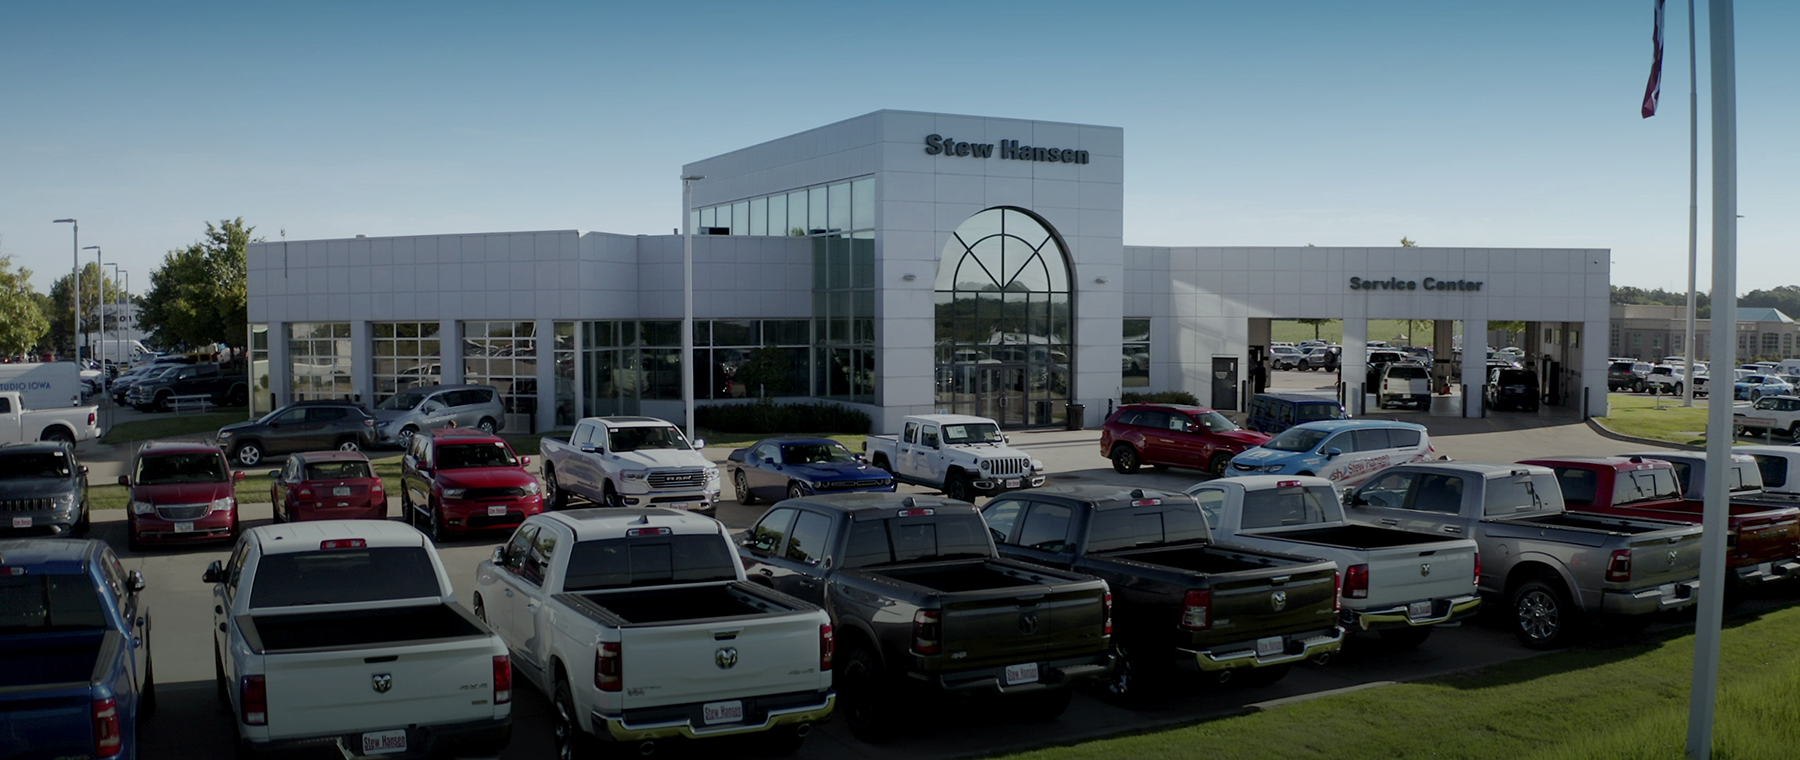 Stew Hansen Cdjr Chrysler Dodge Jeep Ram Dealer In